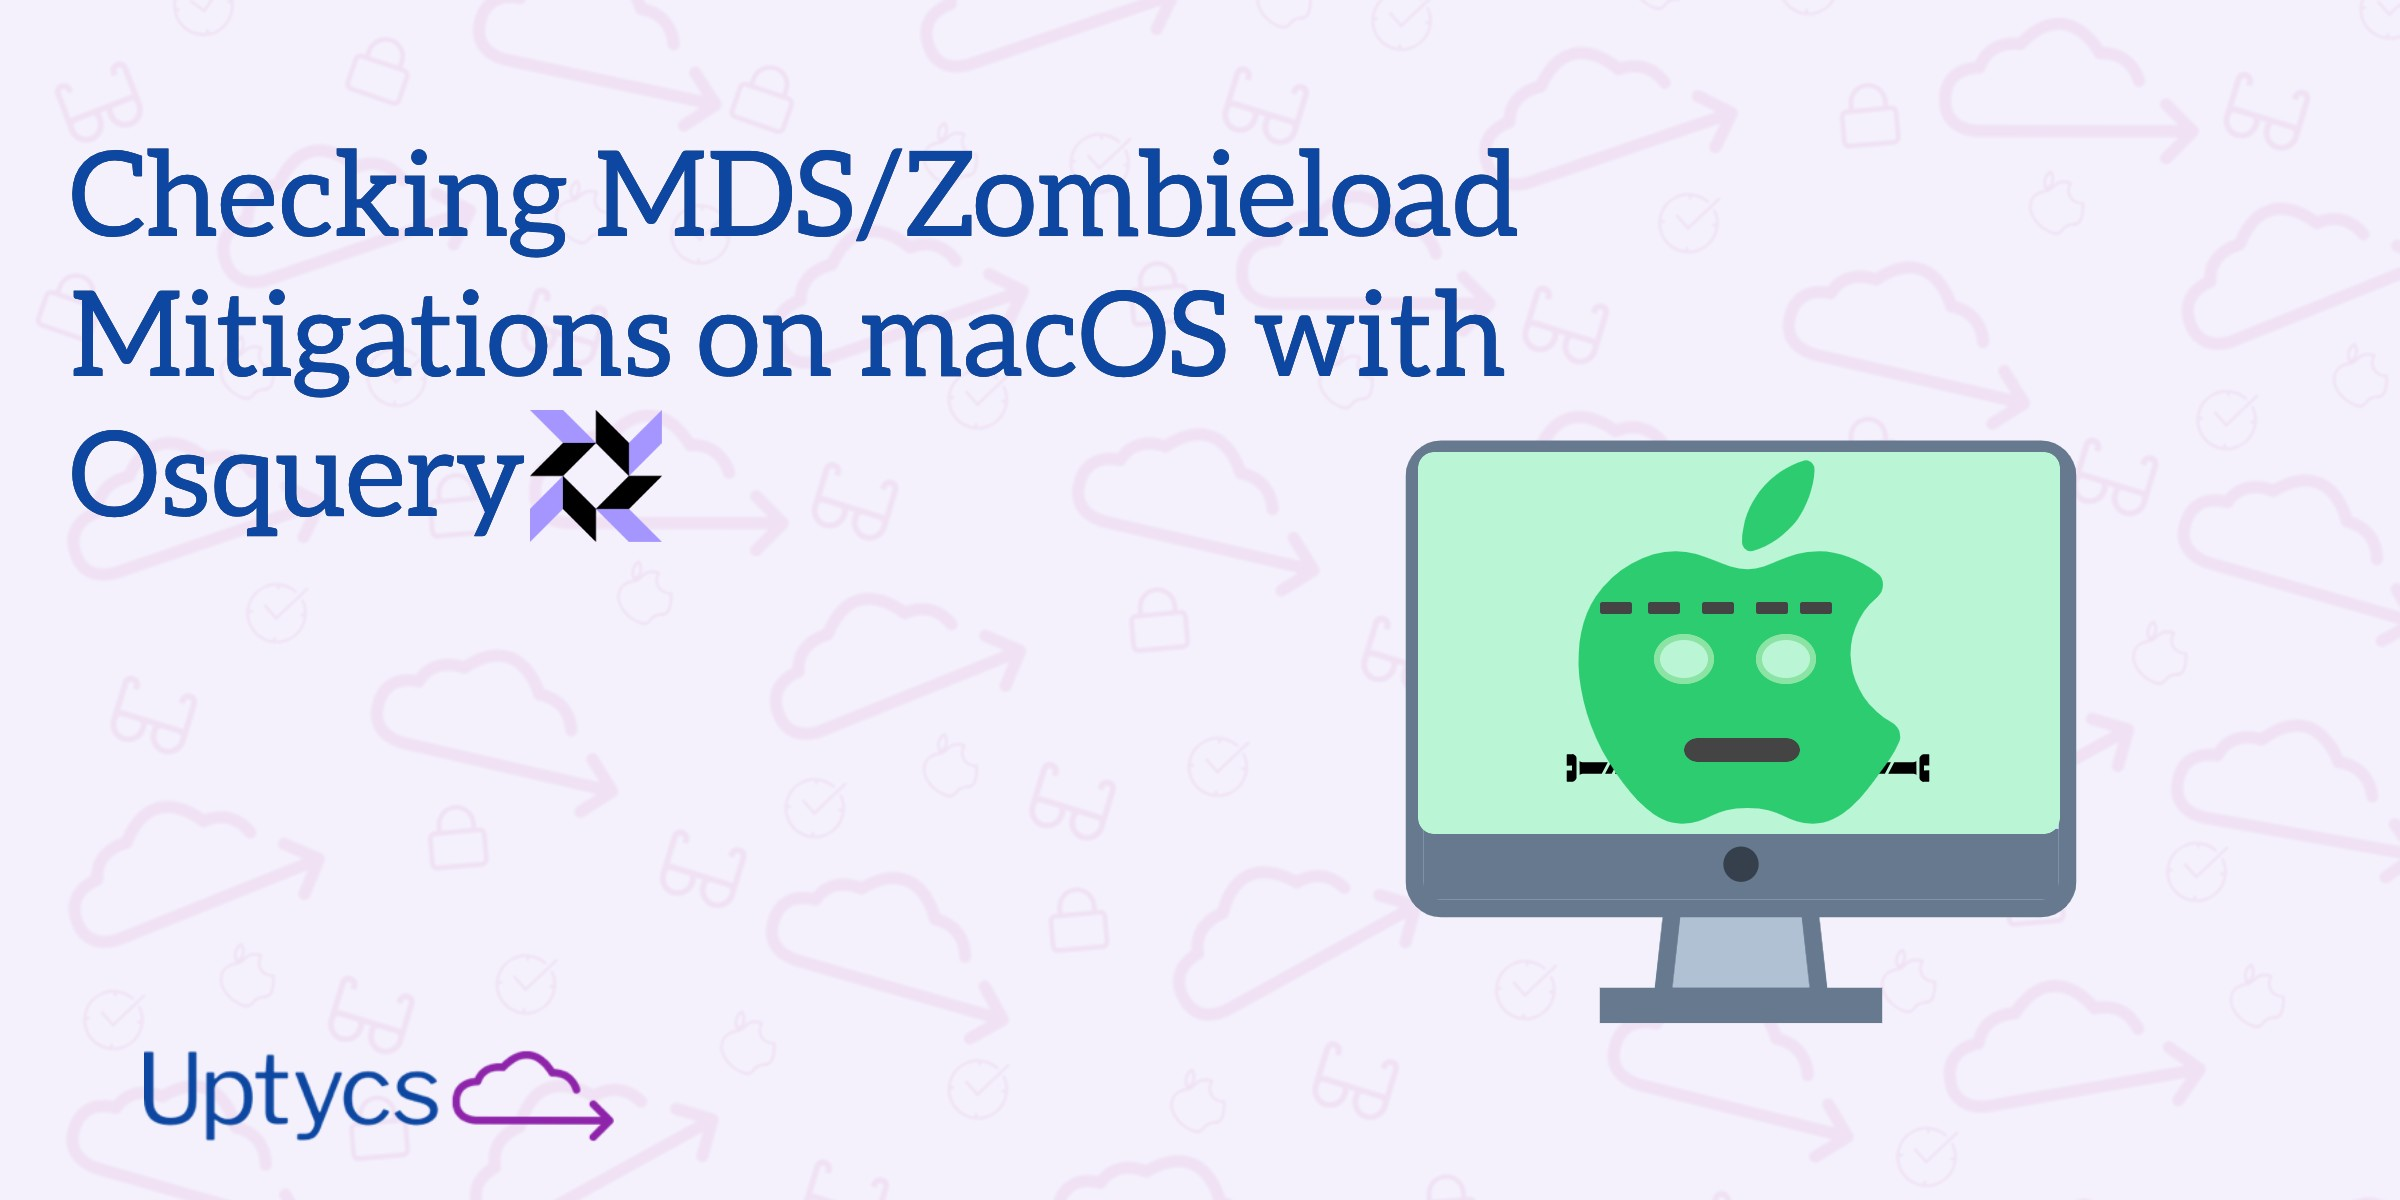 Checking MDS/Zombieload Mitigations on macOS with Osquery